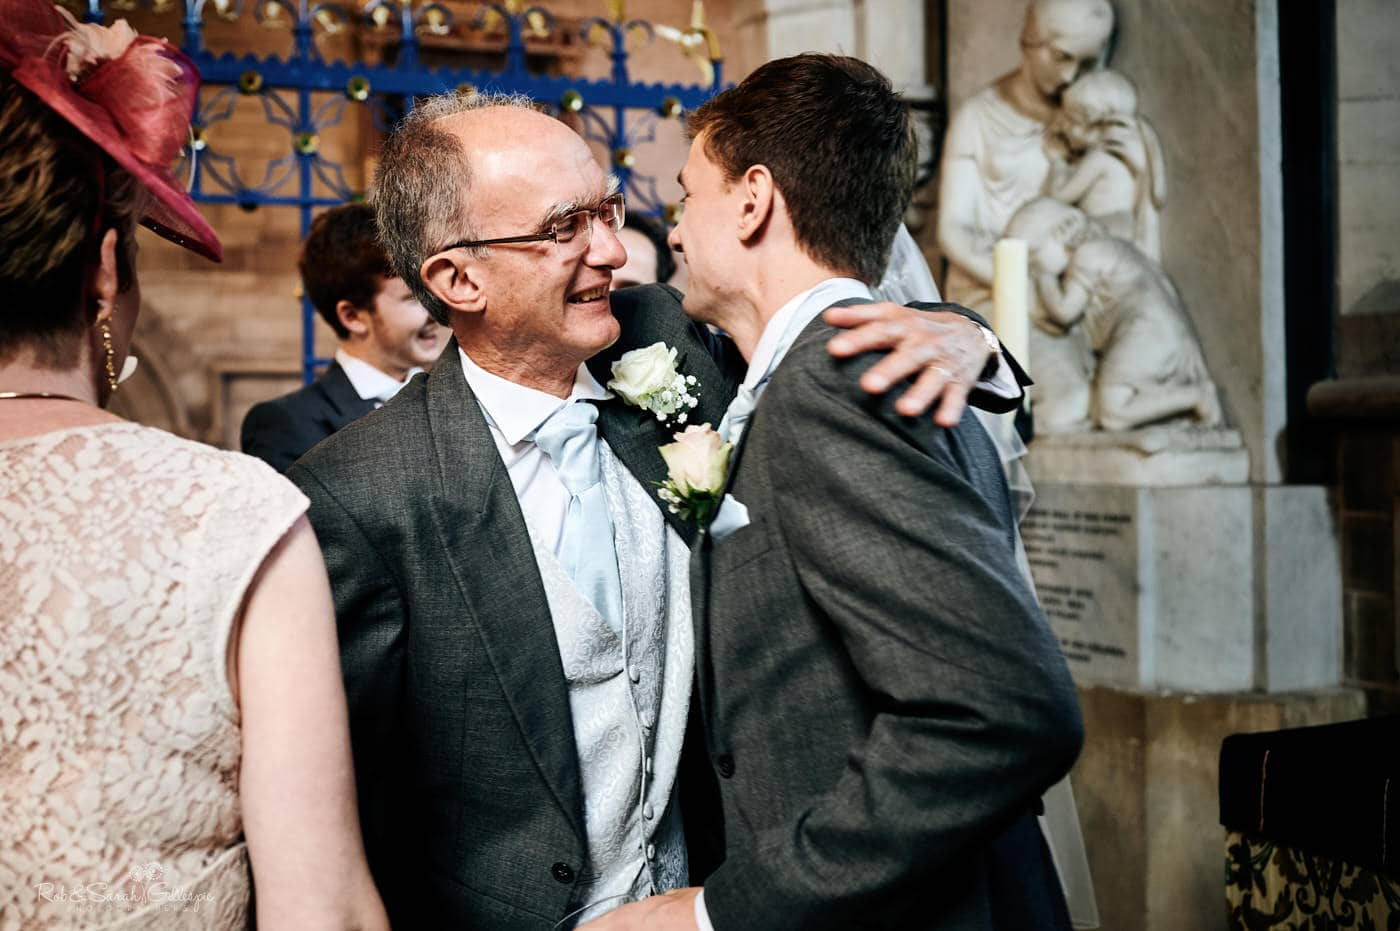 Groom's dad hugs son as they sign marriage register